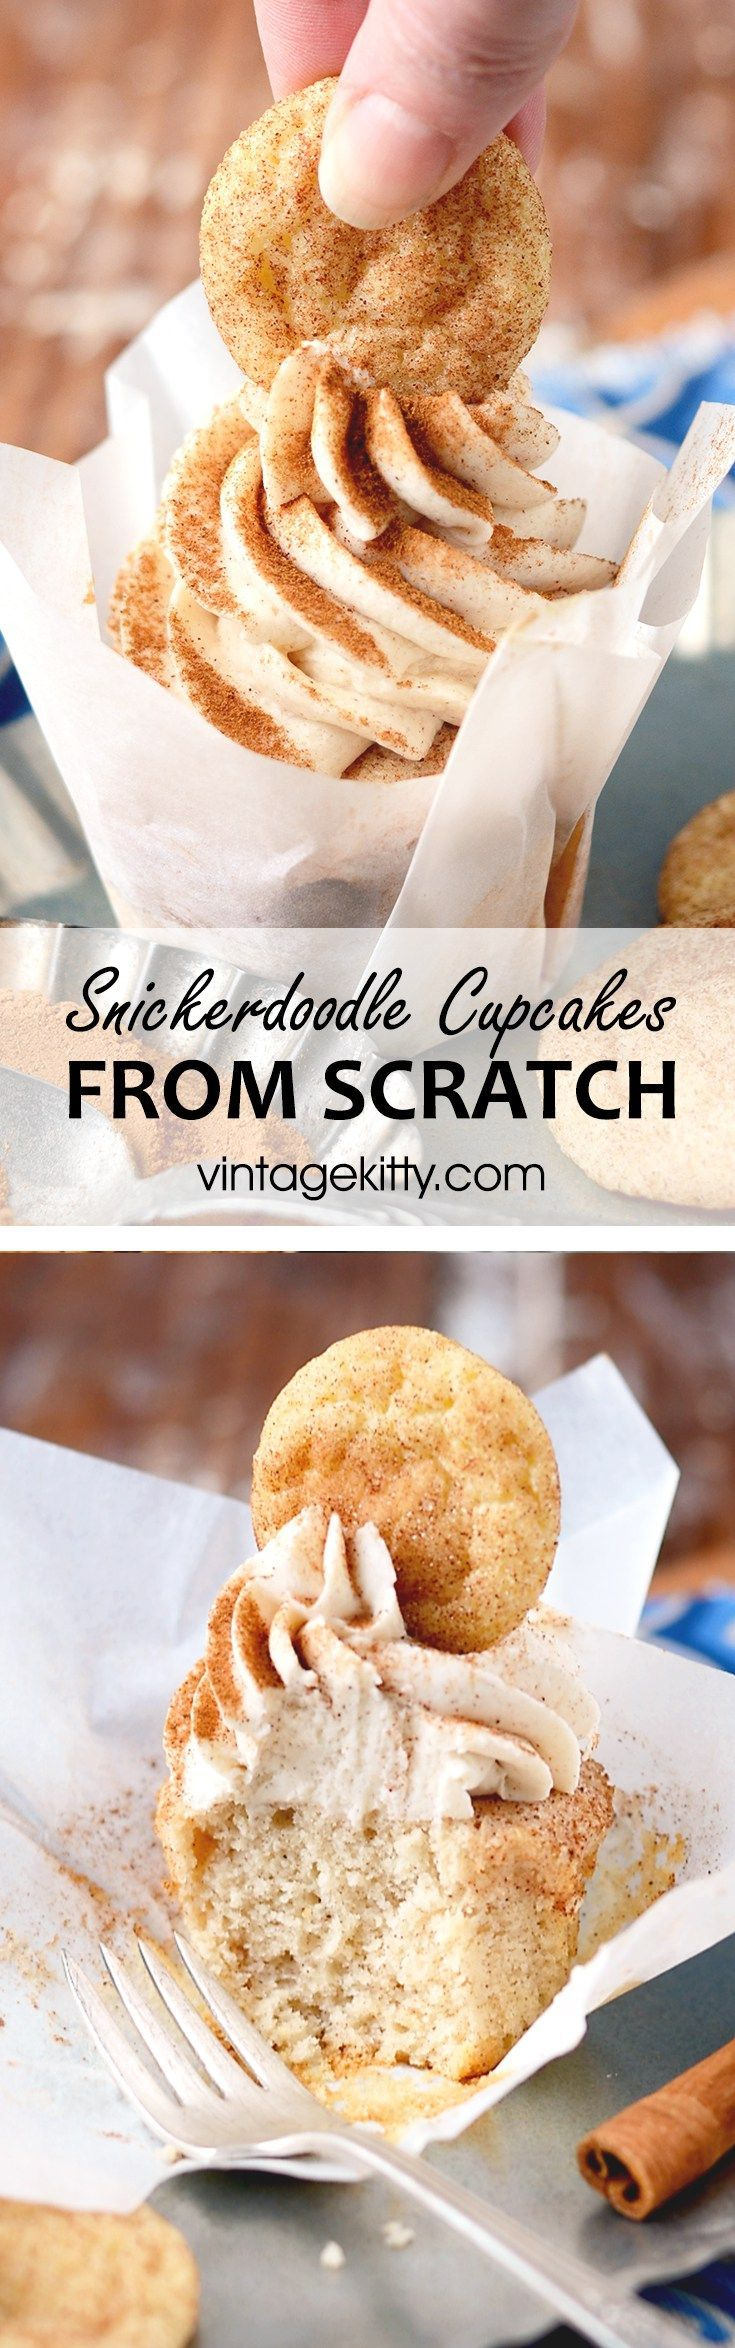 Cinnamon wins the day with these beautiful cookie topped Snickerdoodle Cupcakes! Just in time to wish vintagekitty.com a happy birthday! #cupcakes #snickerdoodles #cinnamon #baking